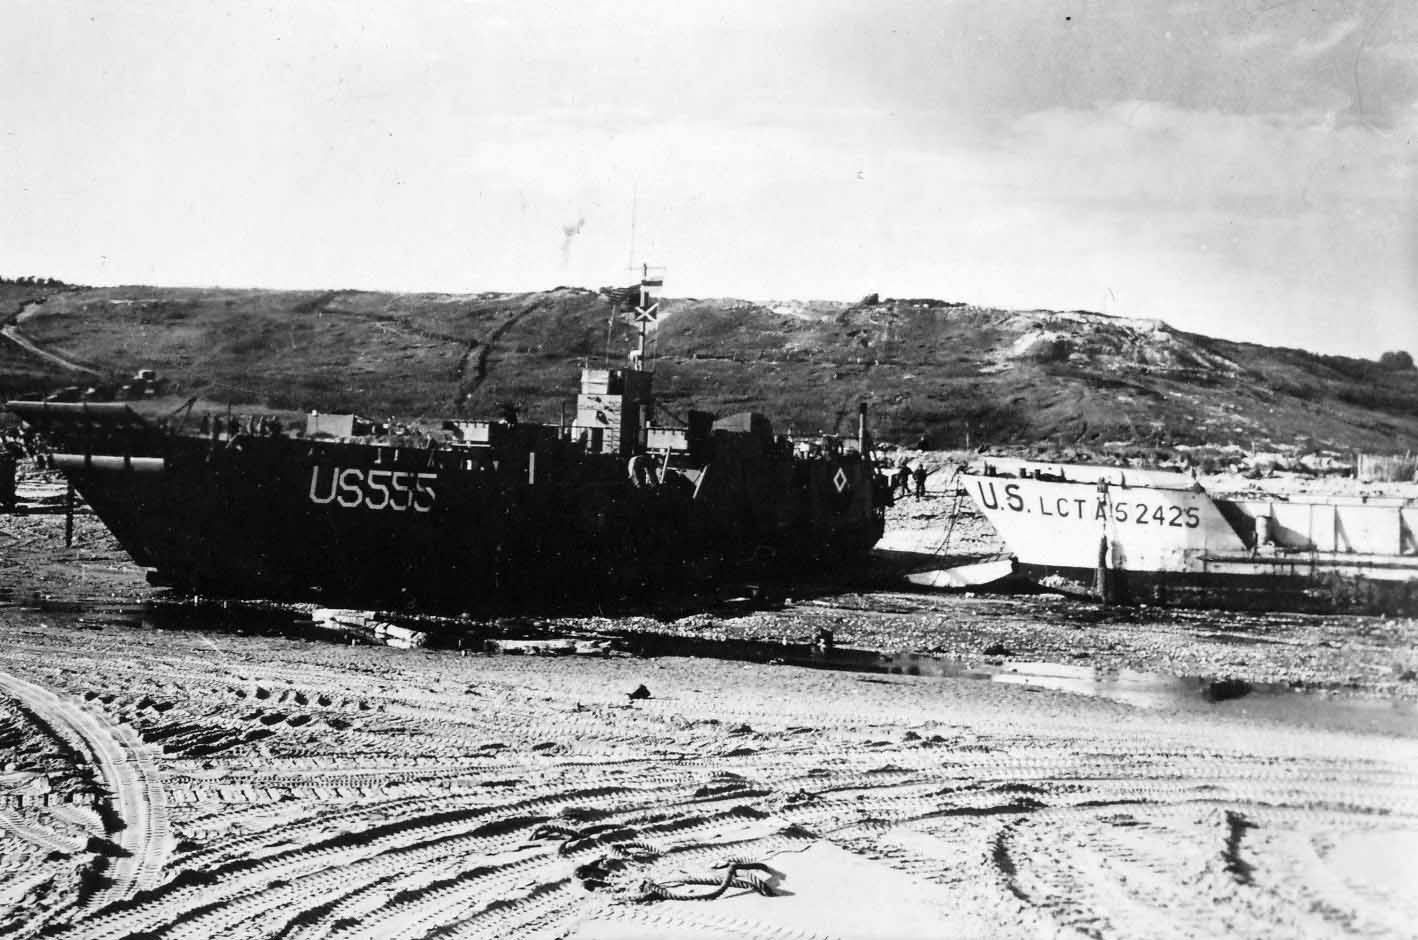 USS LCT-555 stuck on the beach Normandy Invasion